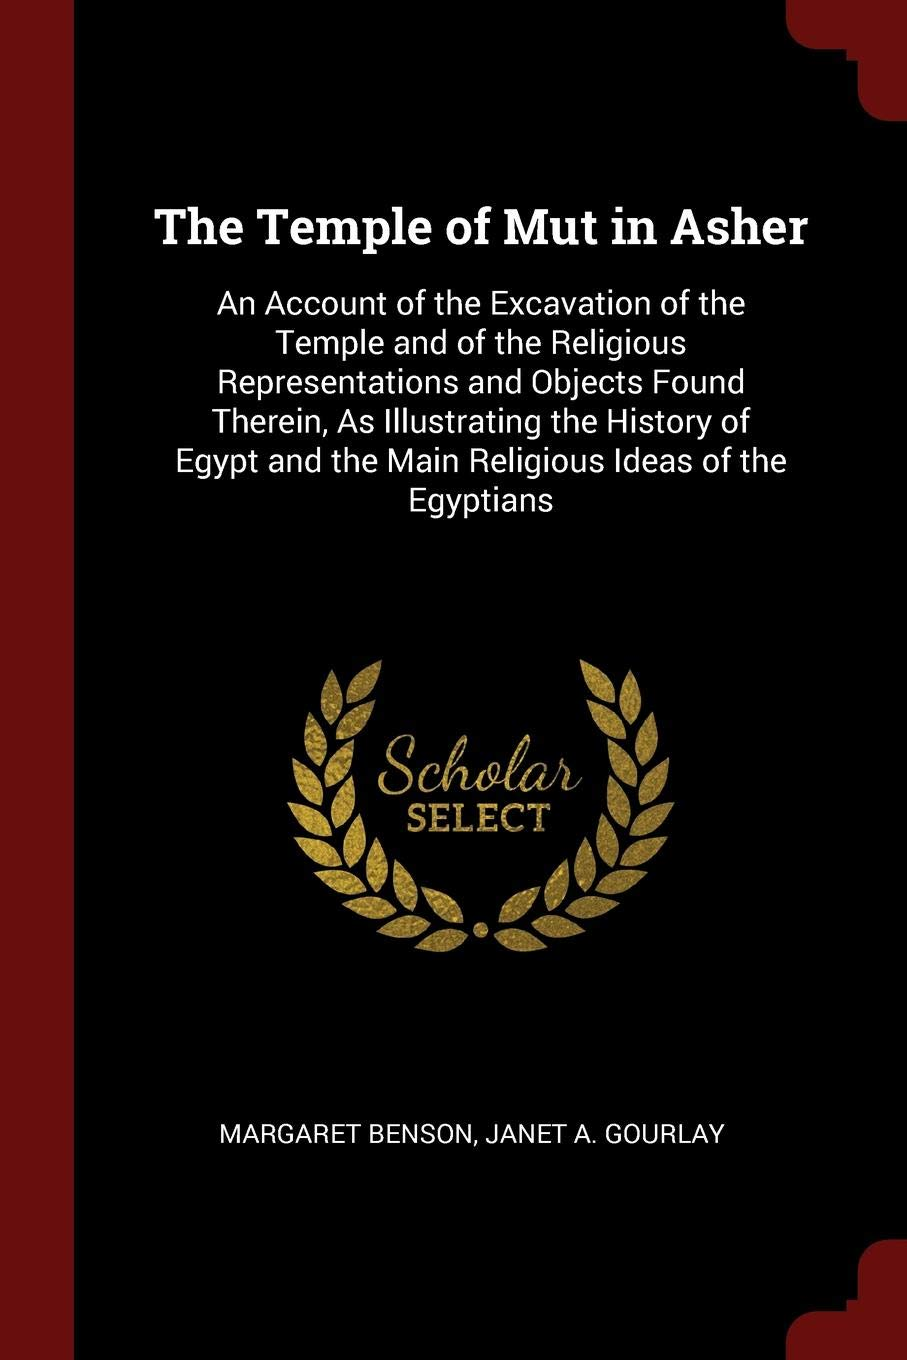 The Temple of Mut in Asher: An Account of the Excavation of the Temple and of the Religious Representations and Objects Found Therein, As Illustrating ... and the Main Religious Ideas of the Egyptians